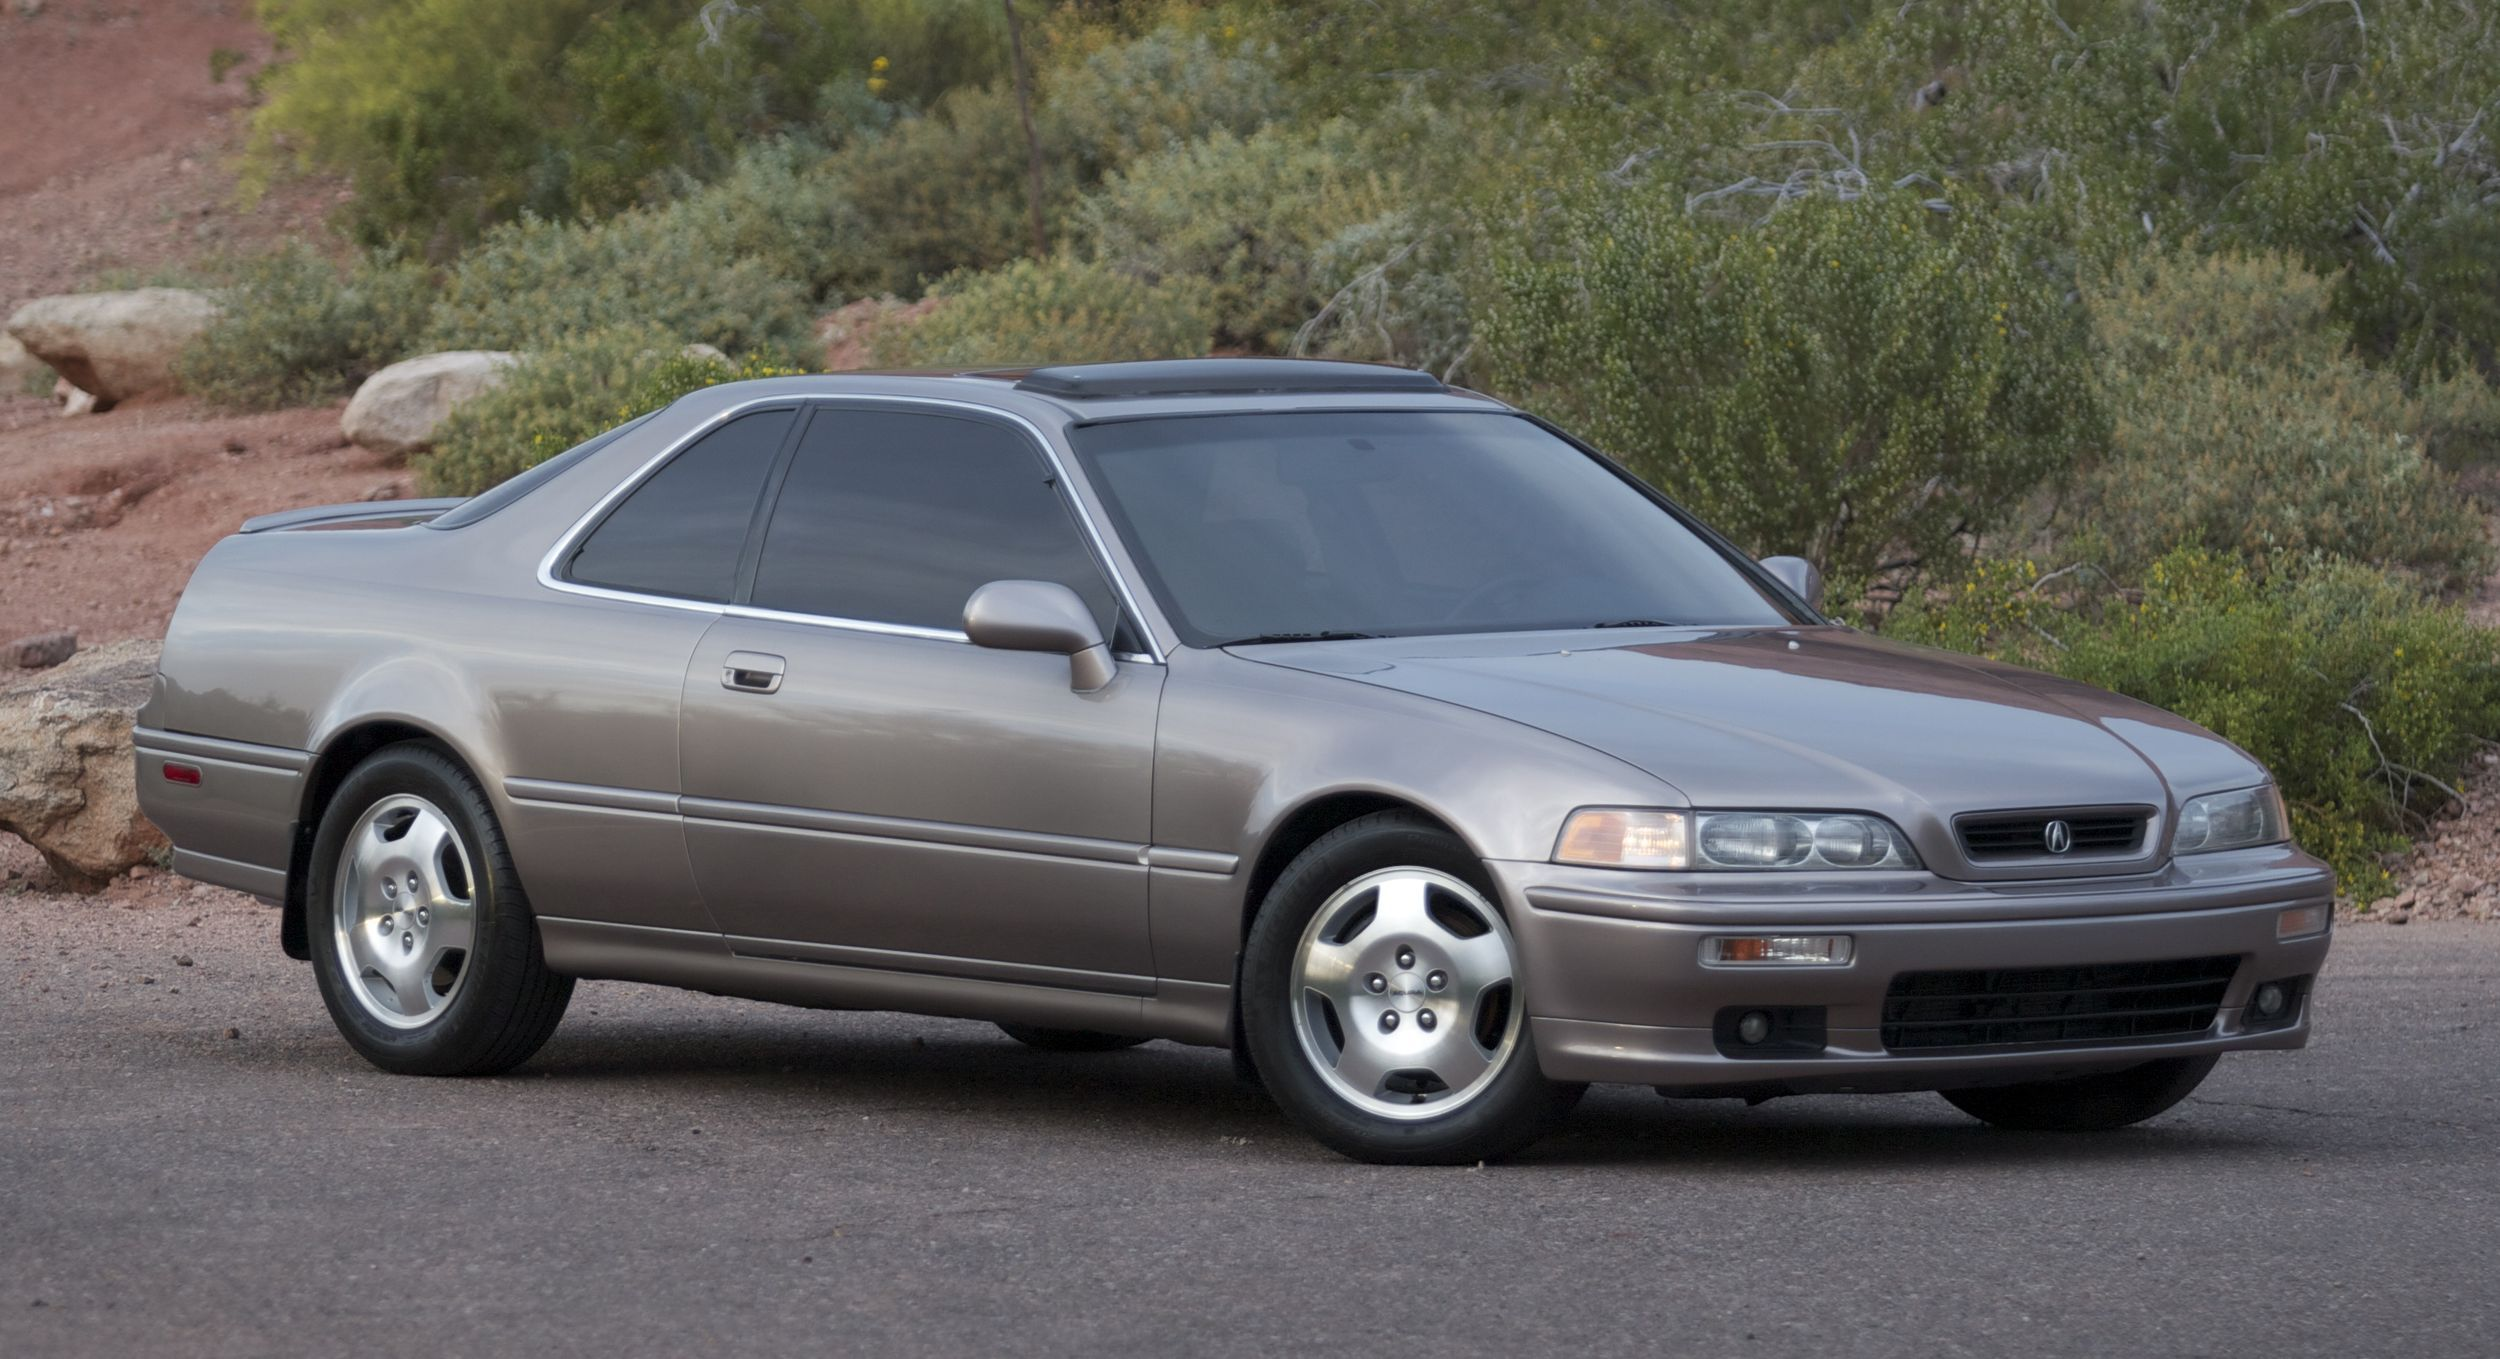 Acura legend coupe black color center car image pinterest coupe car images and hot cars